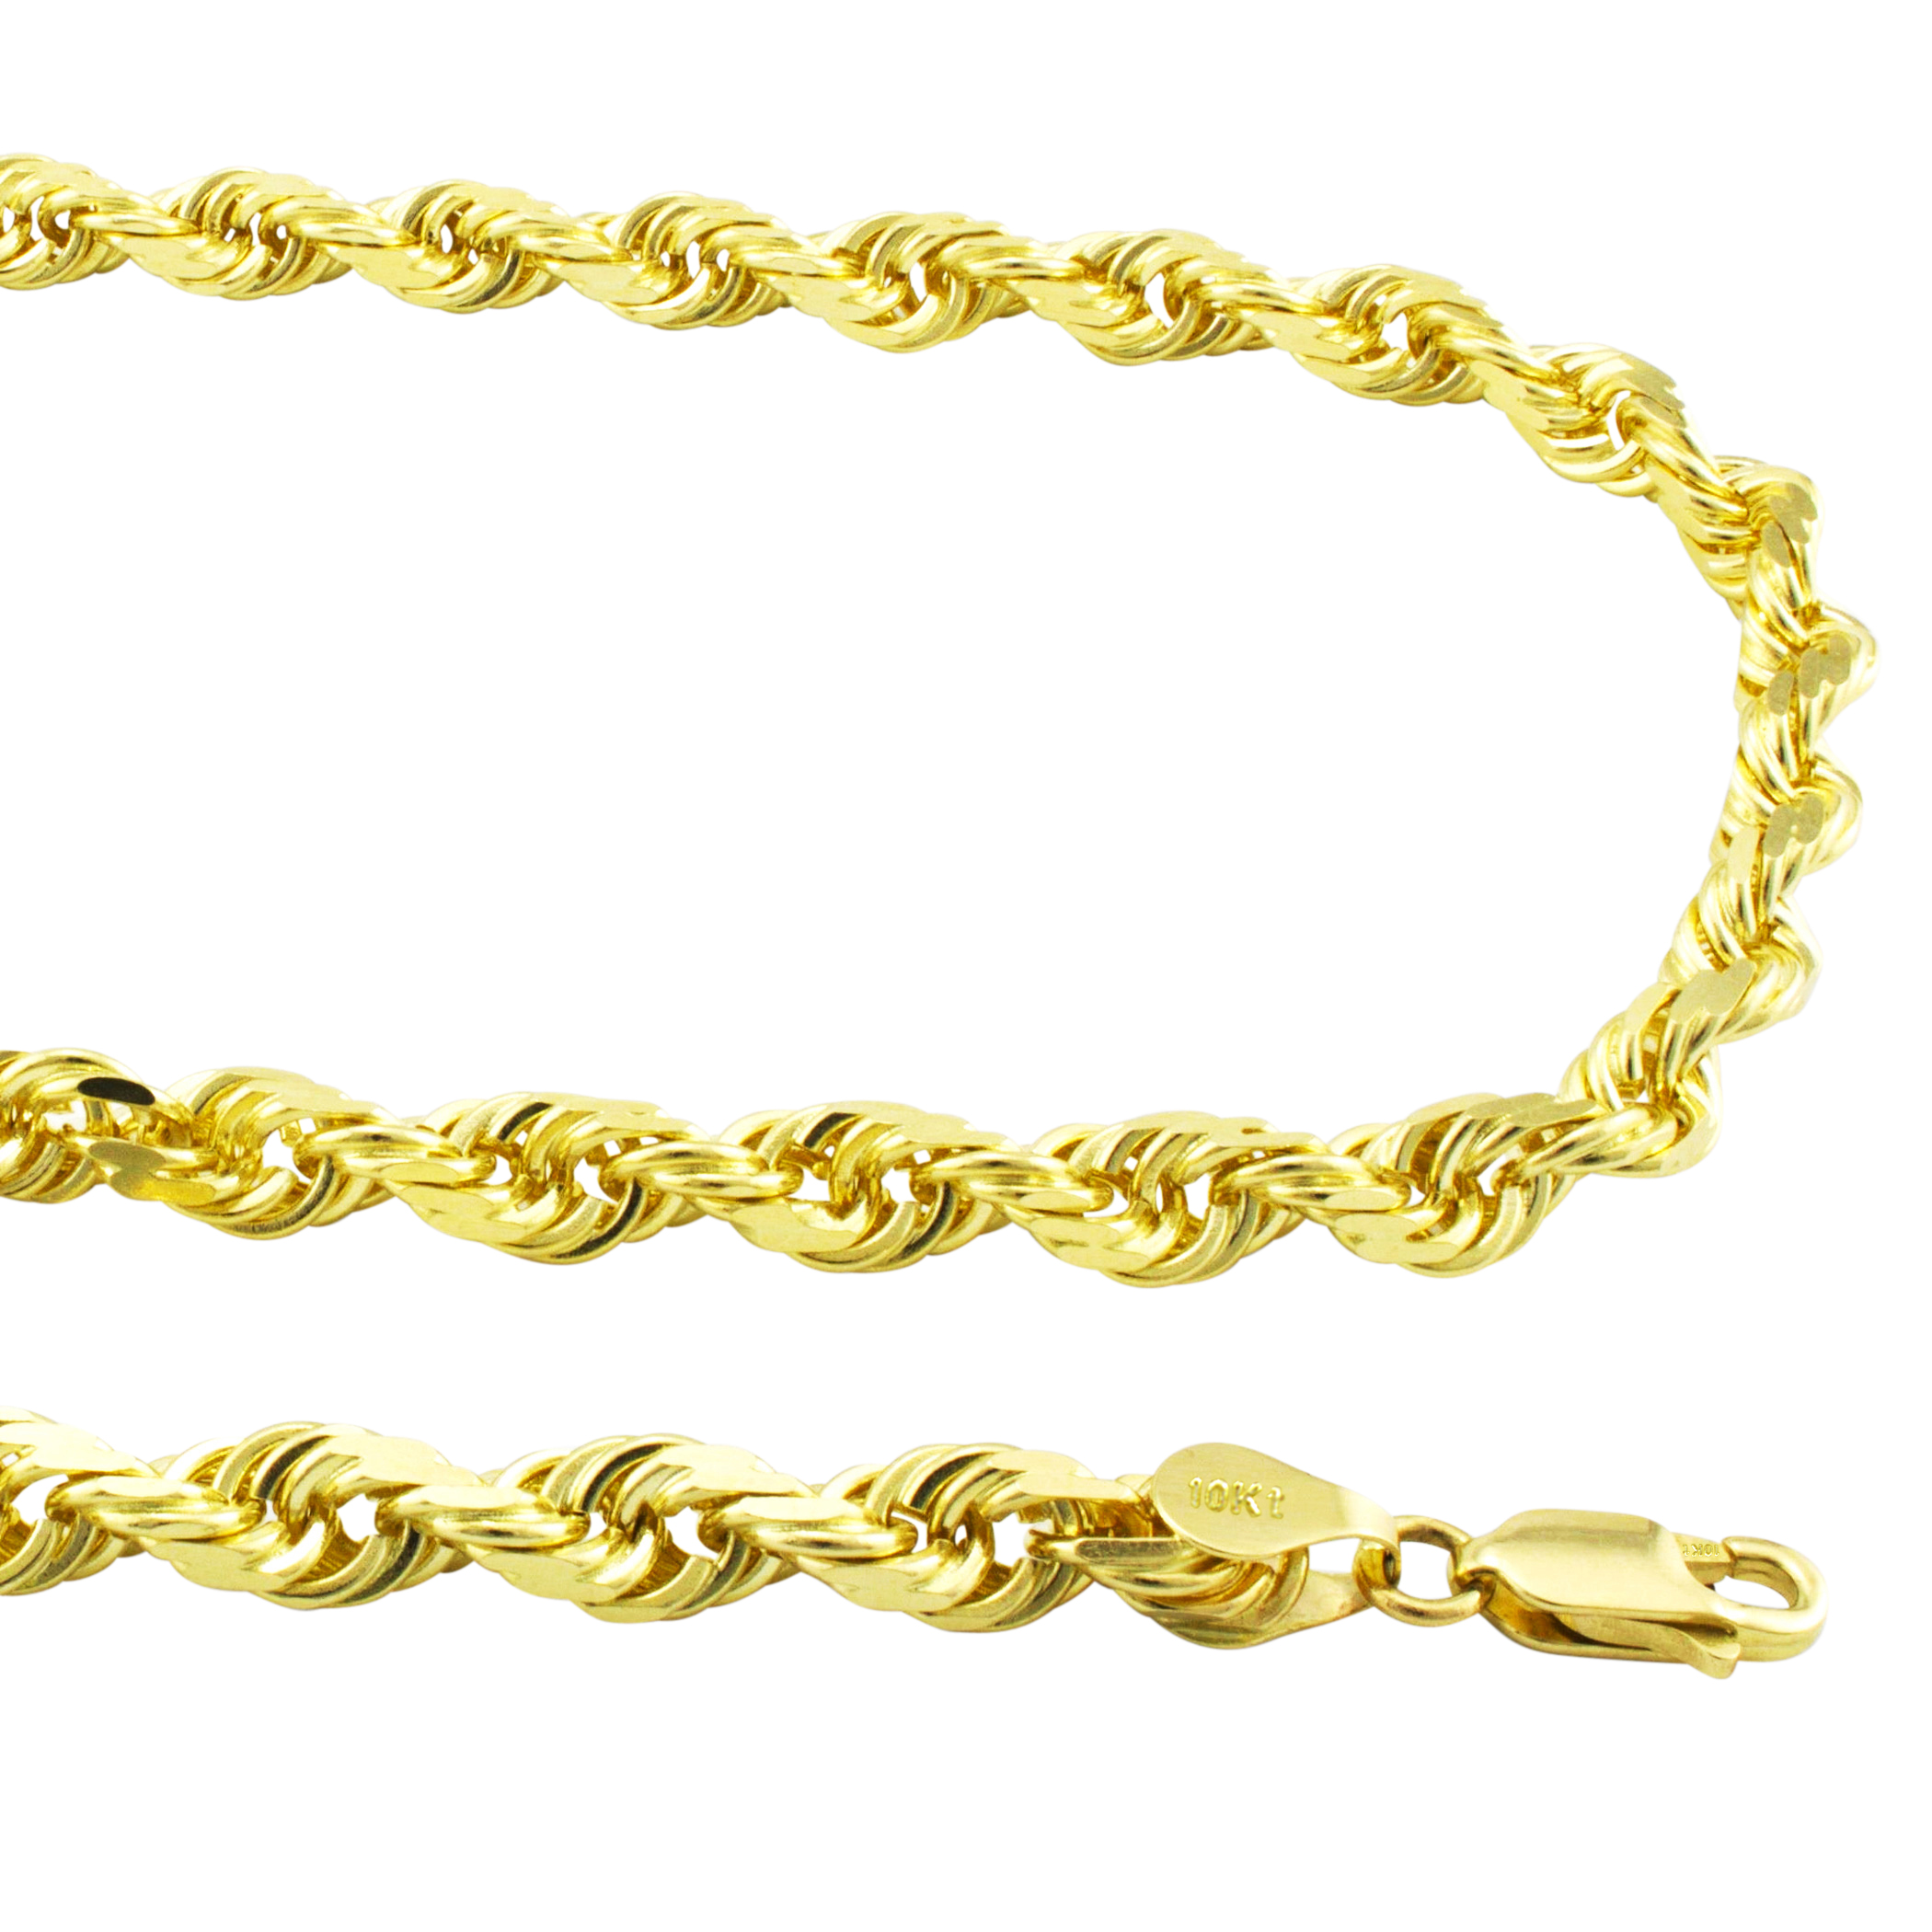 Solid-10k-Yellow-Gold-Mens-Thick-6mm-Diamond-Cut-Rope-Chain-Necklace-20-034-30-034 thumbnail 12